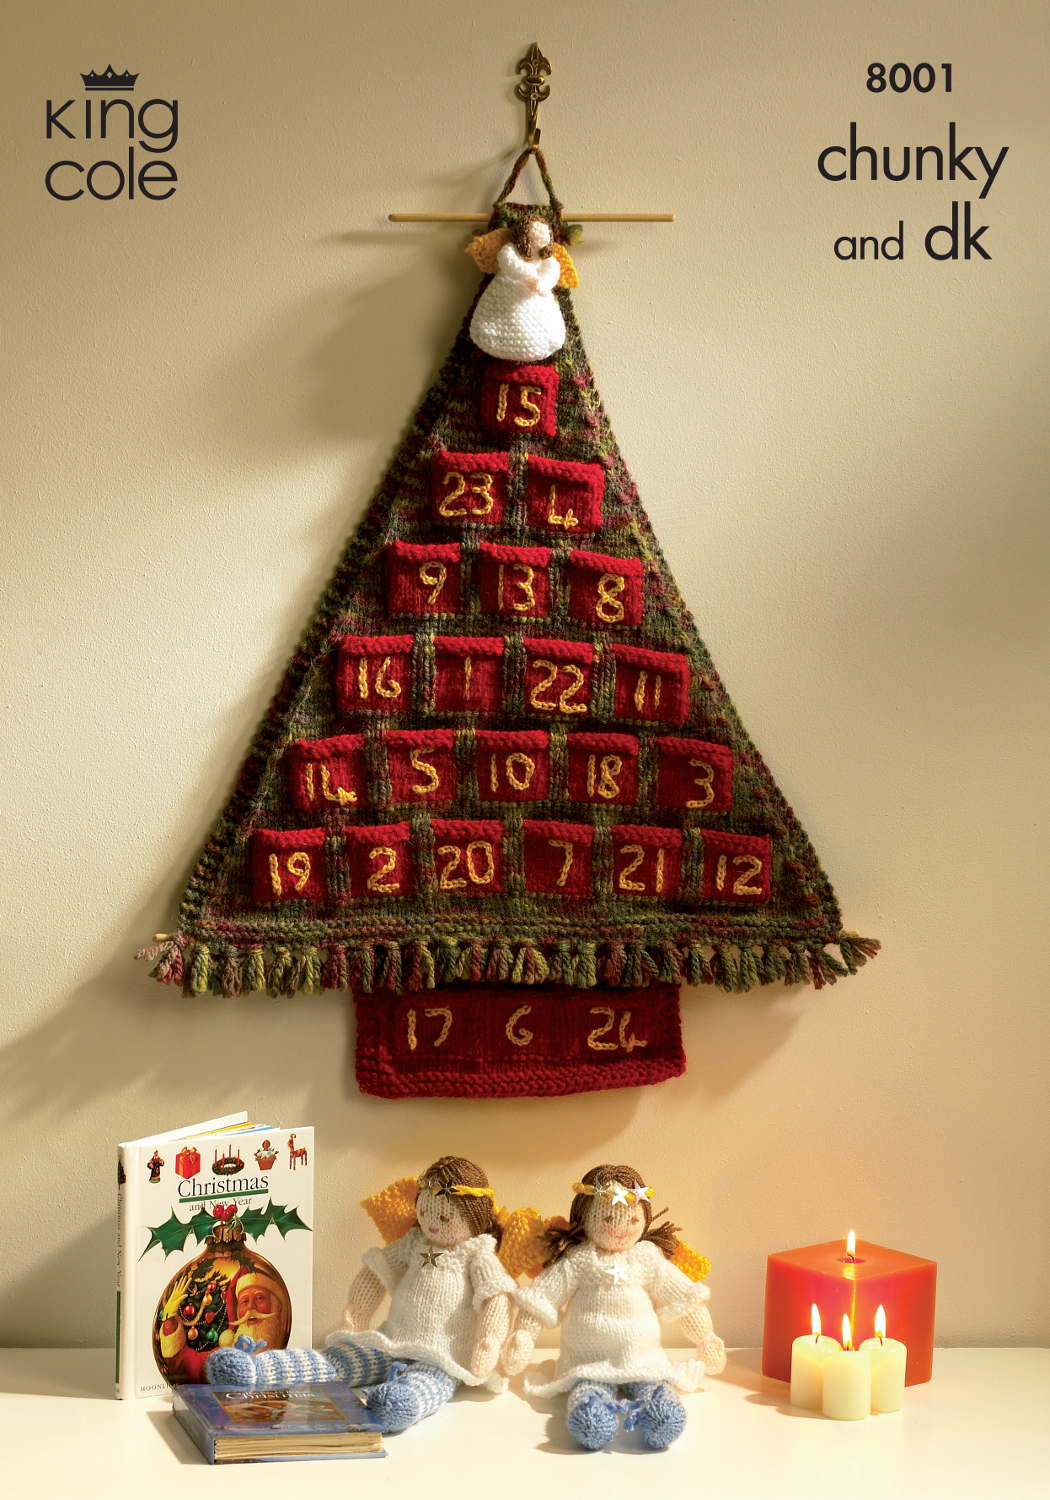 Knitting Pattern Christmas Advent Calendar : King Cole Christmas Chunky DK Knitting Pattern Advent Calendar Tree Angels 8001